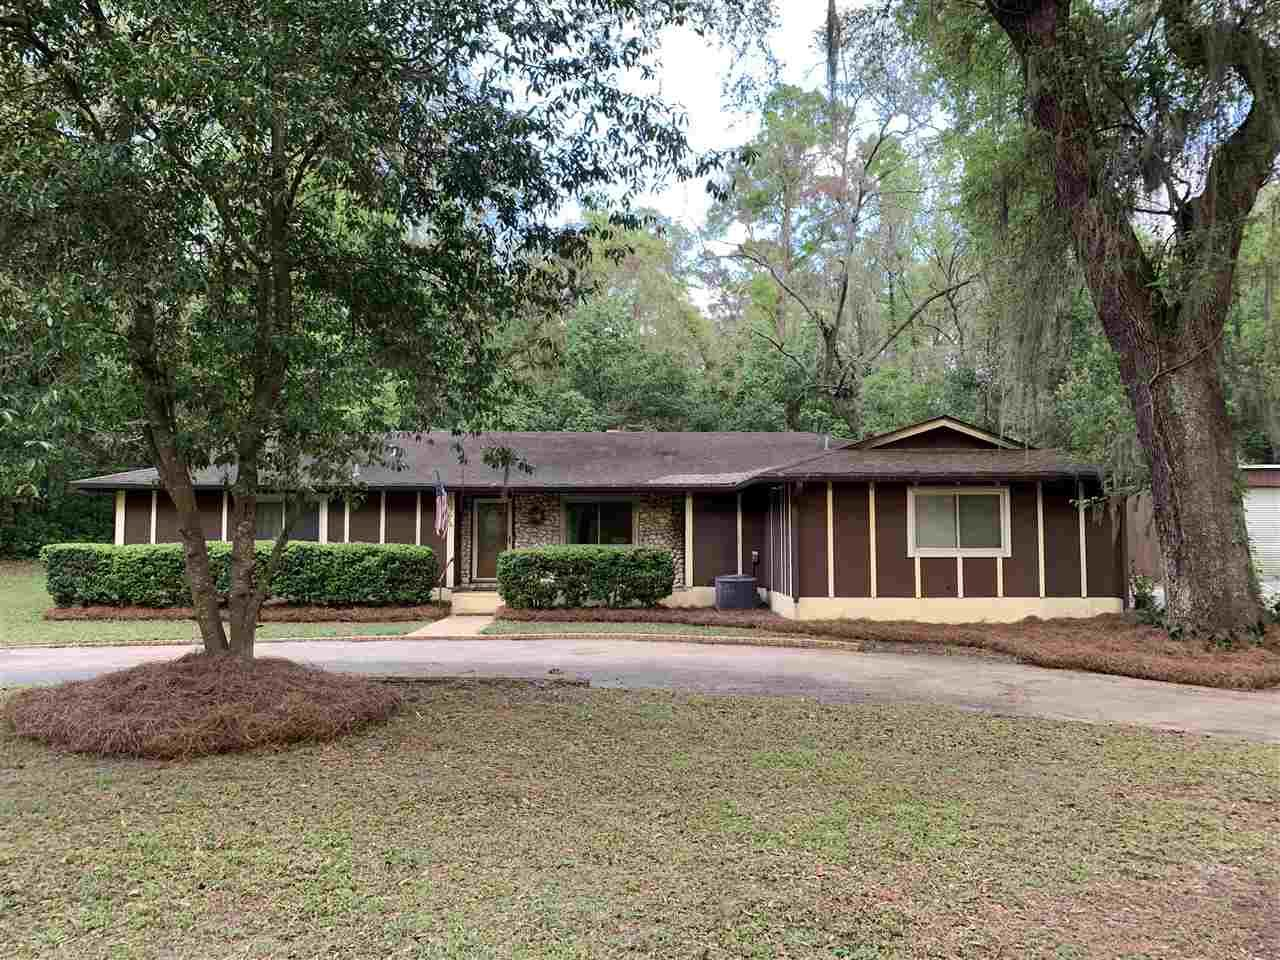 Photo of 3077 Sharer Road, TALLAHASSEE, FL 32303 (MLS # 330923)